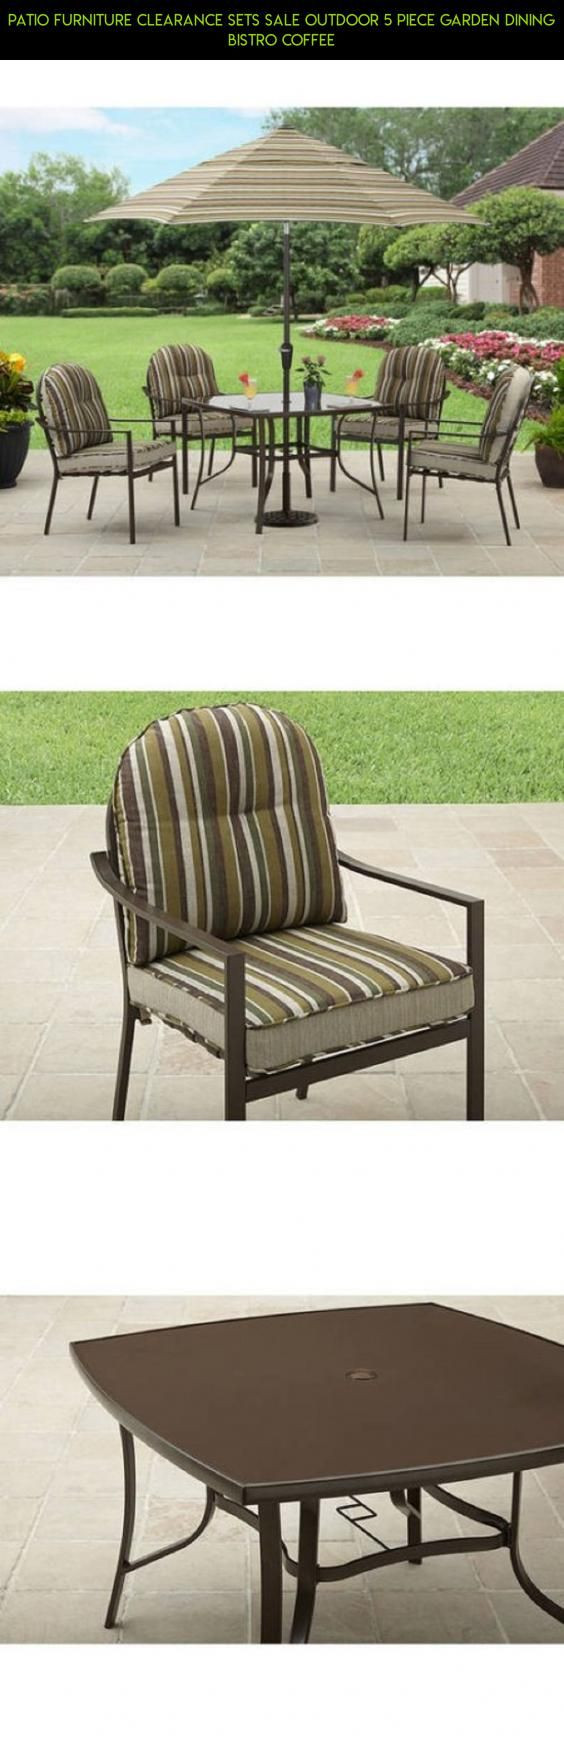 Best ideas about Patio Furniture Clearance Sale . Save or Pin Best Patio Furniture Clearance Ideas Wicker Sale Home Now.